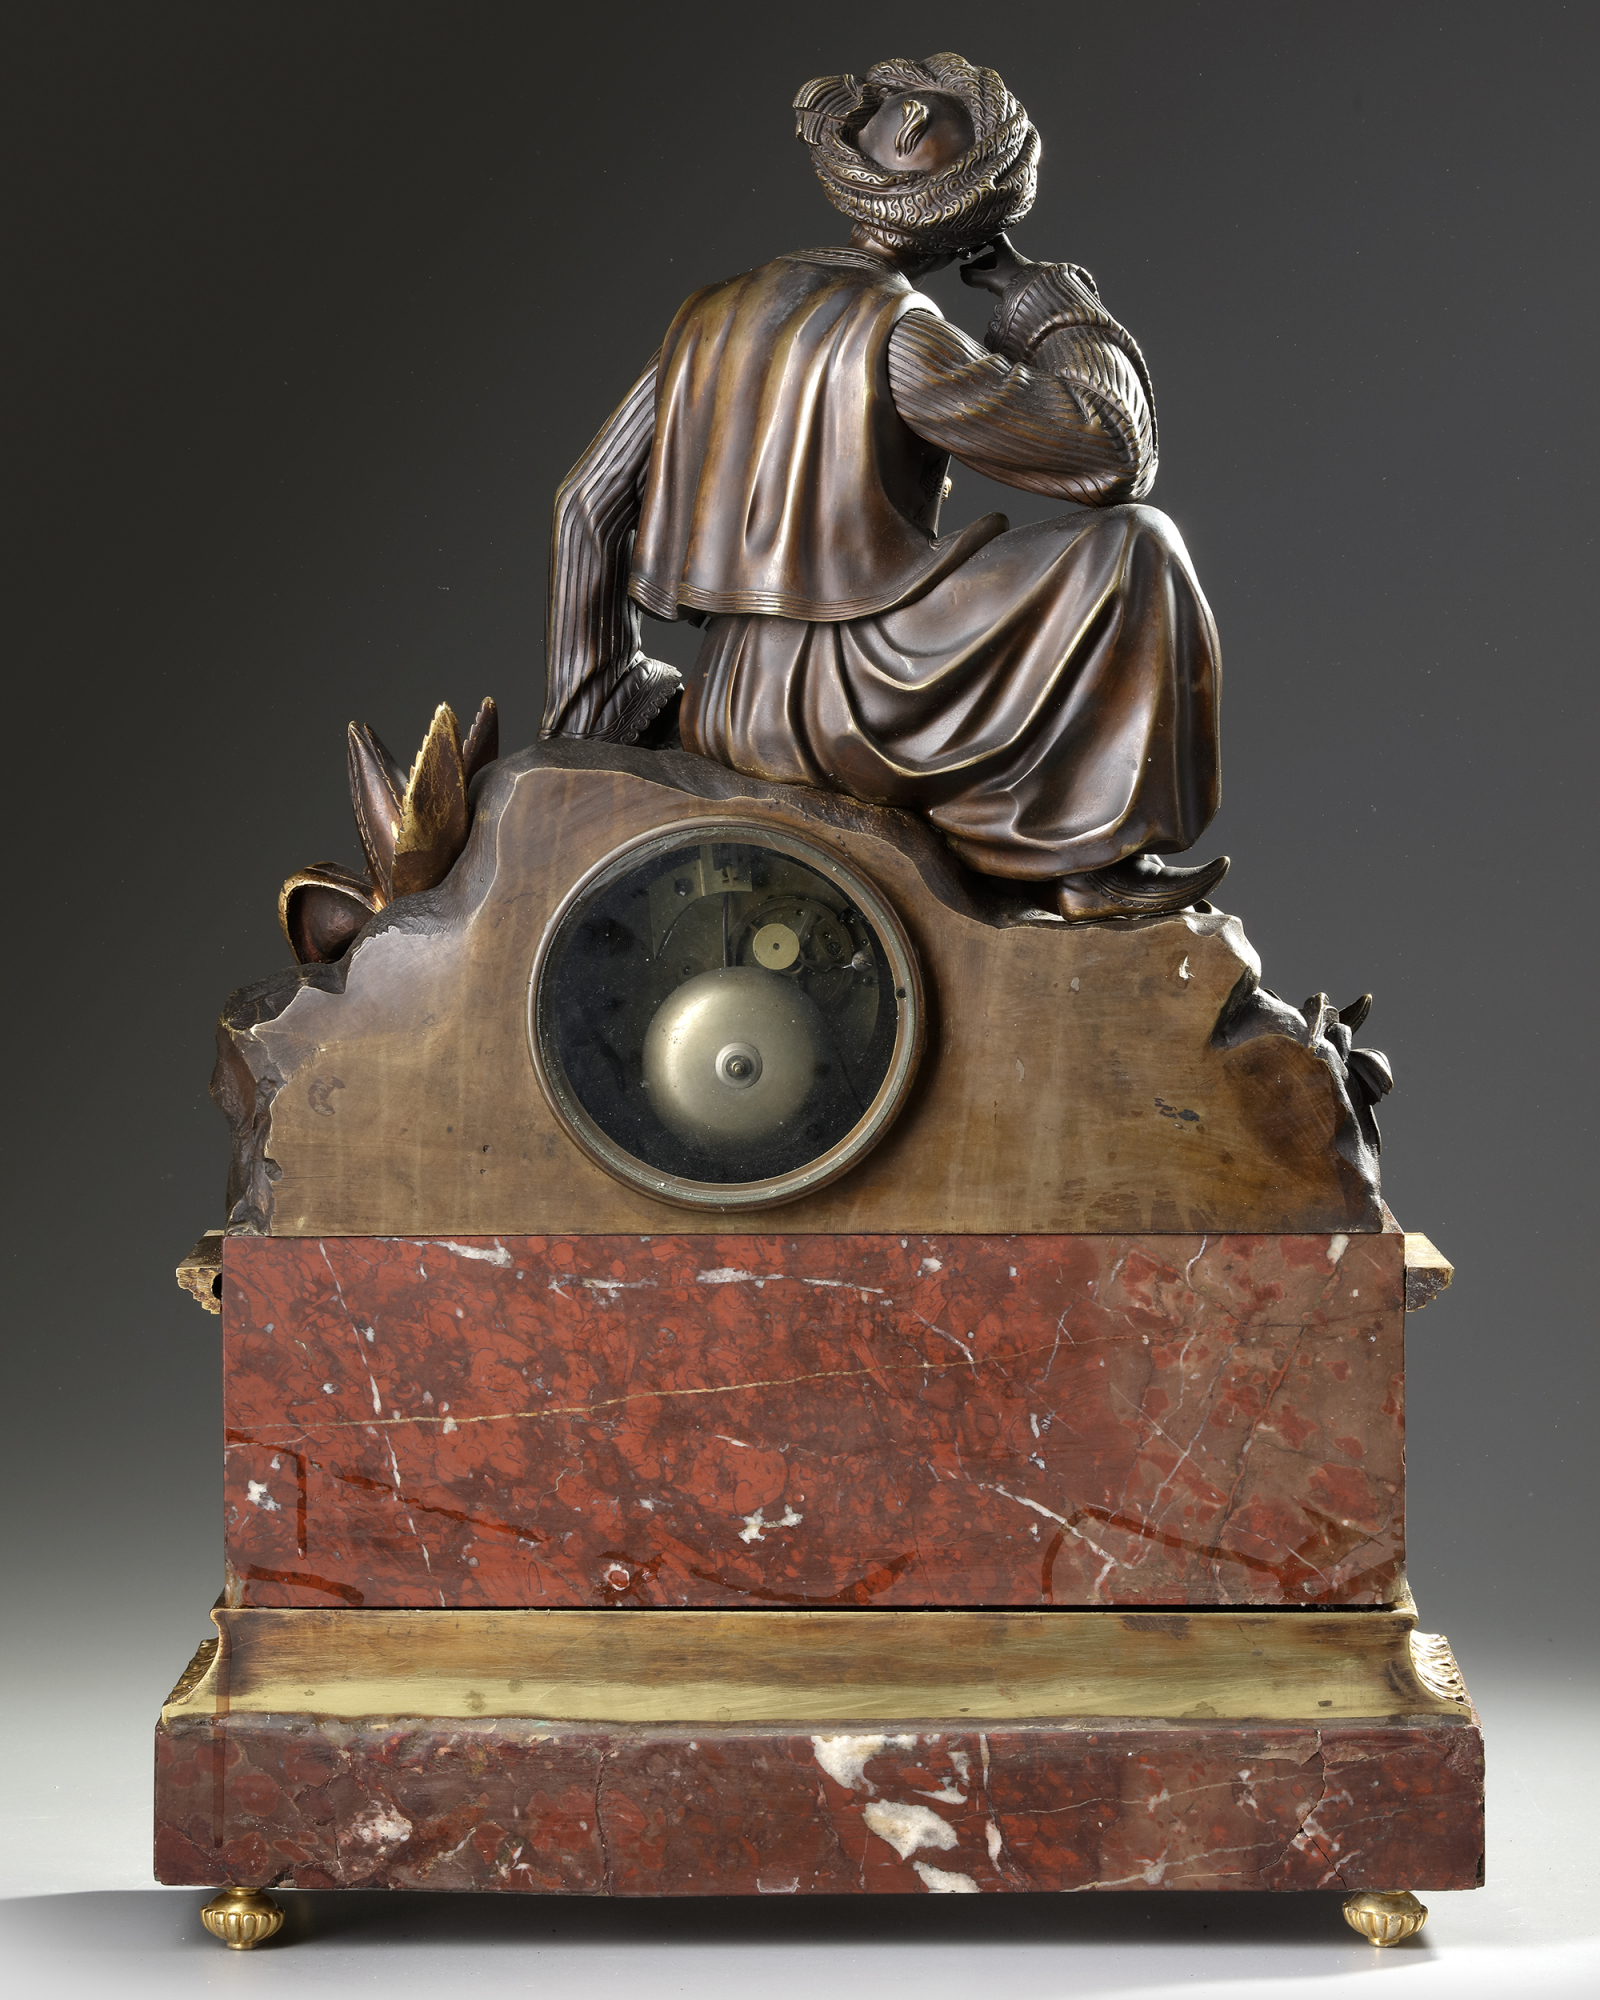 AN ORIENTALIST CLOCK, FRANCE, 19TH CENTURY - Image 3 of 5